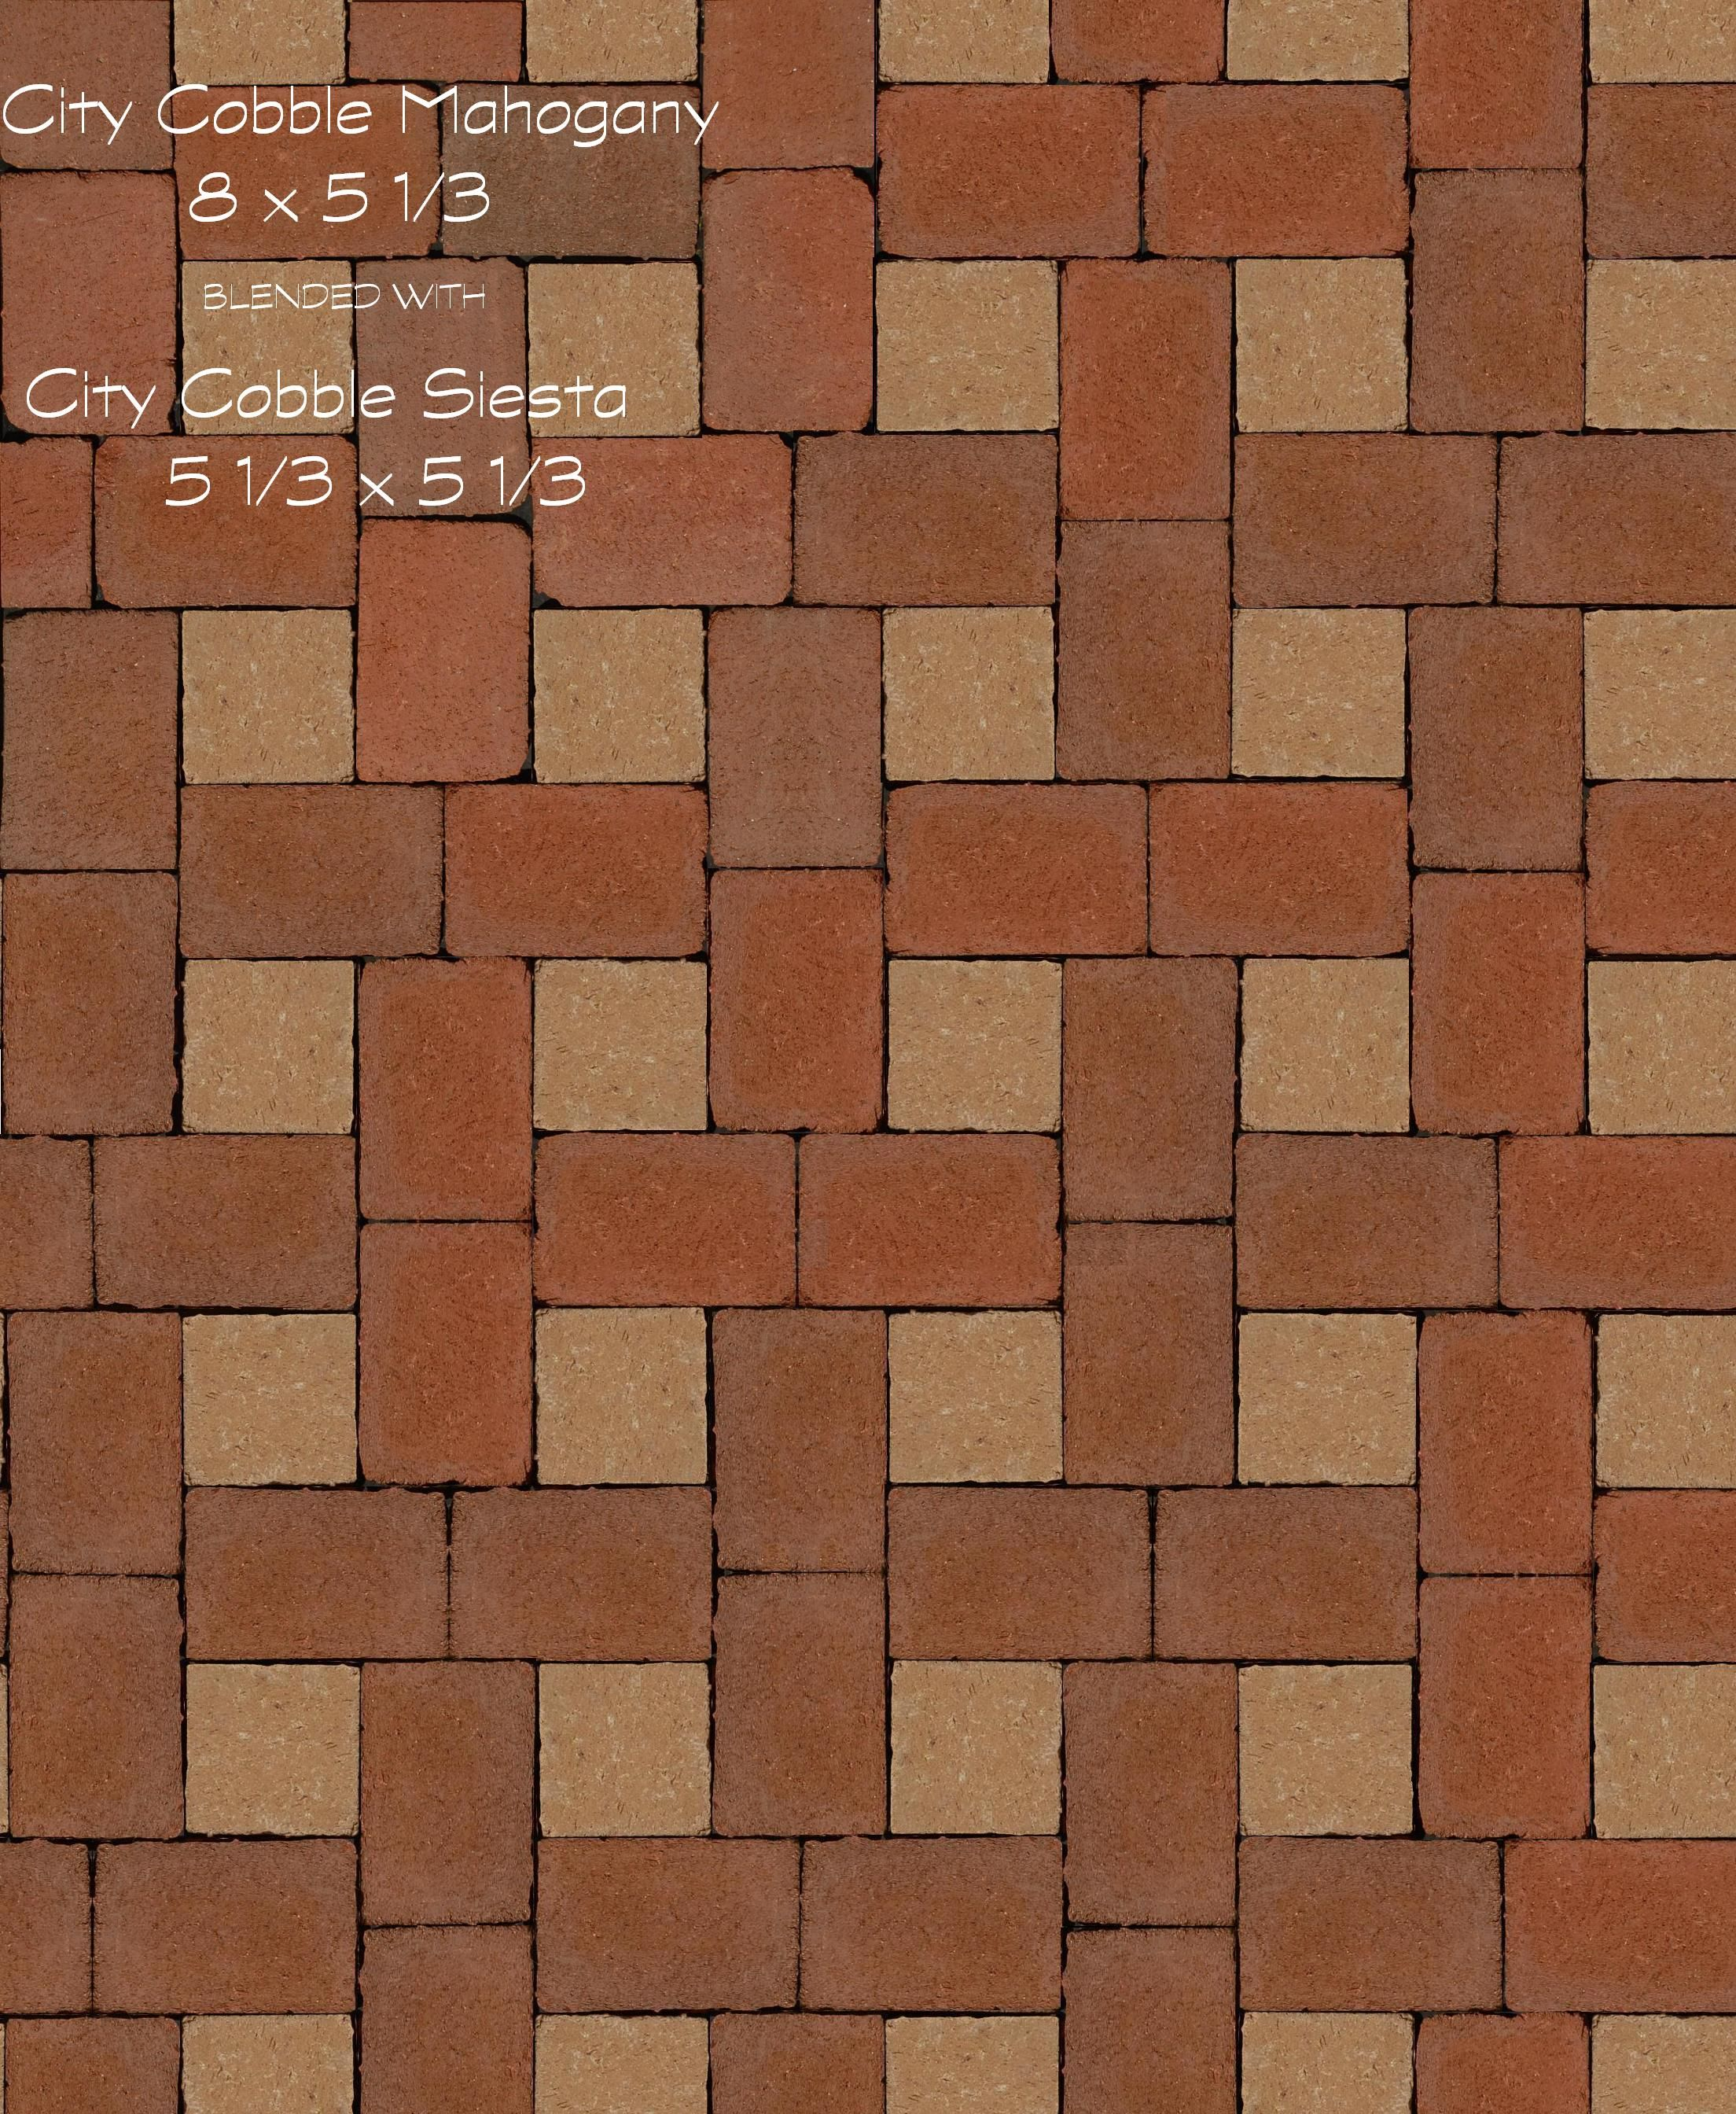 Brick Paver Patterns City Cobble And Siesta Paver Pattern Made With Pine Hall Brick